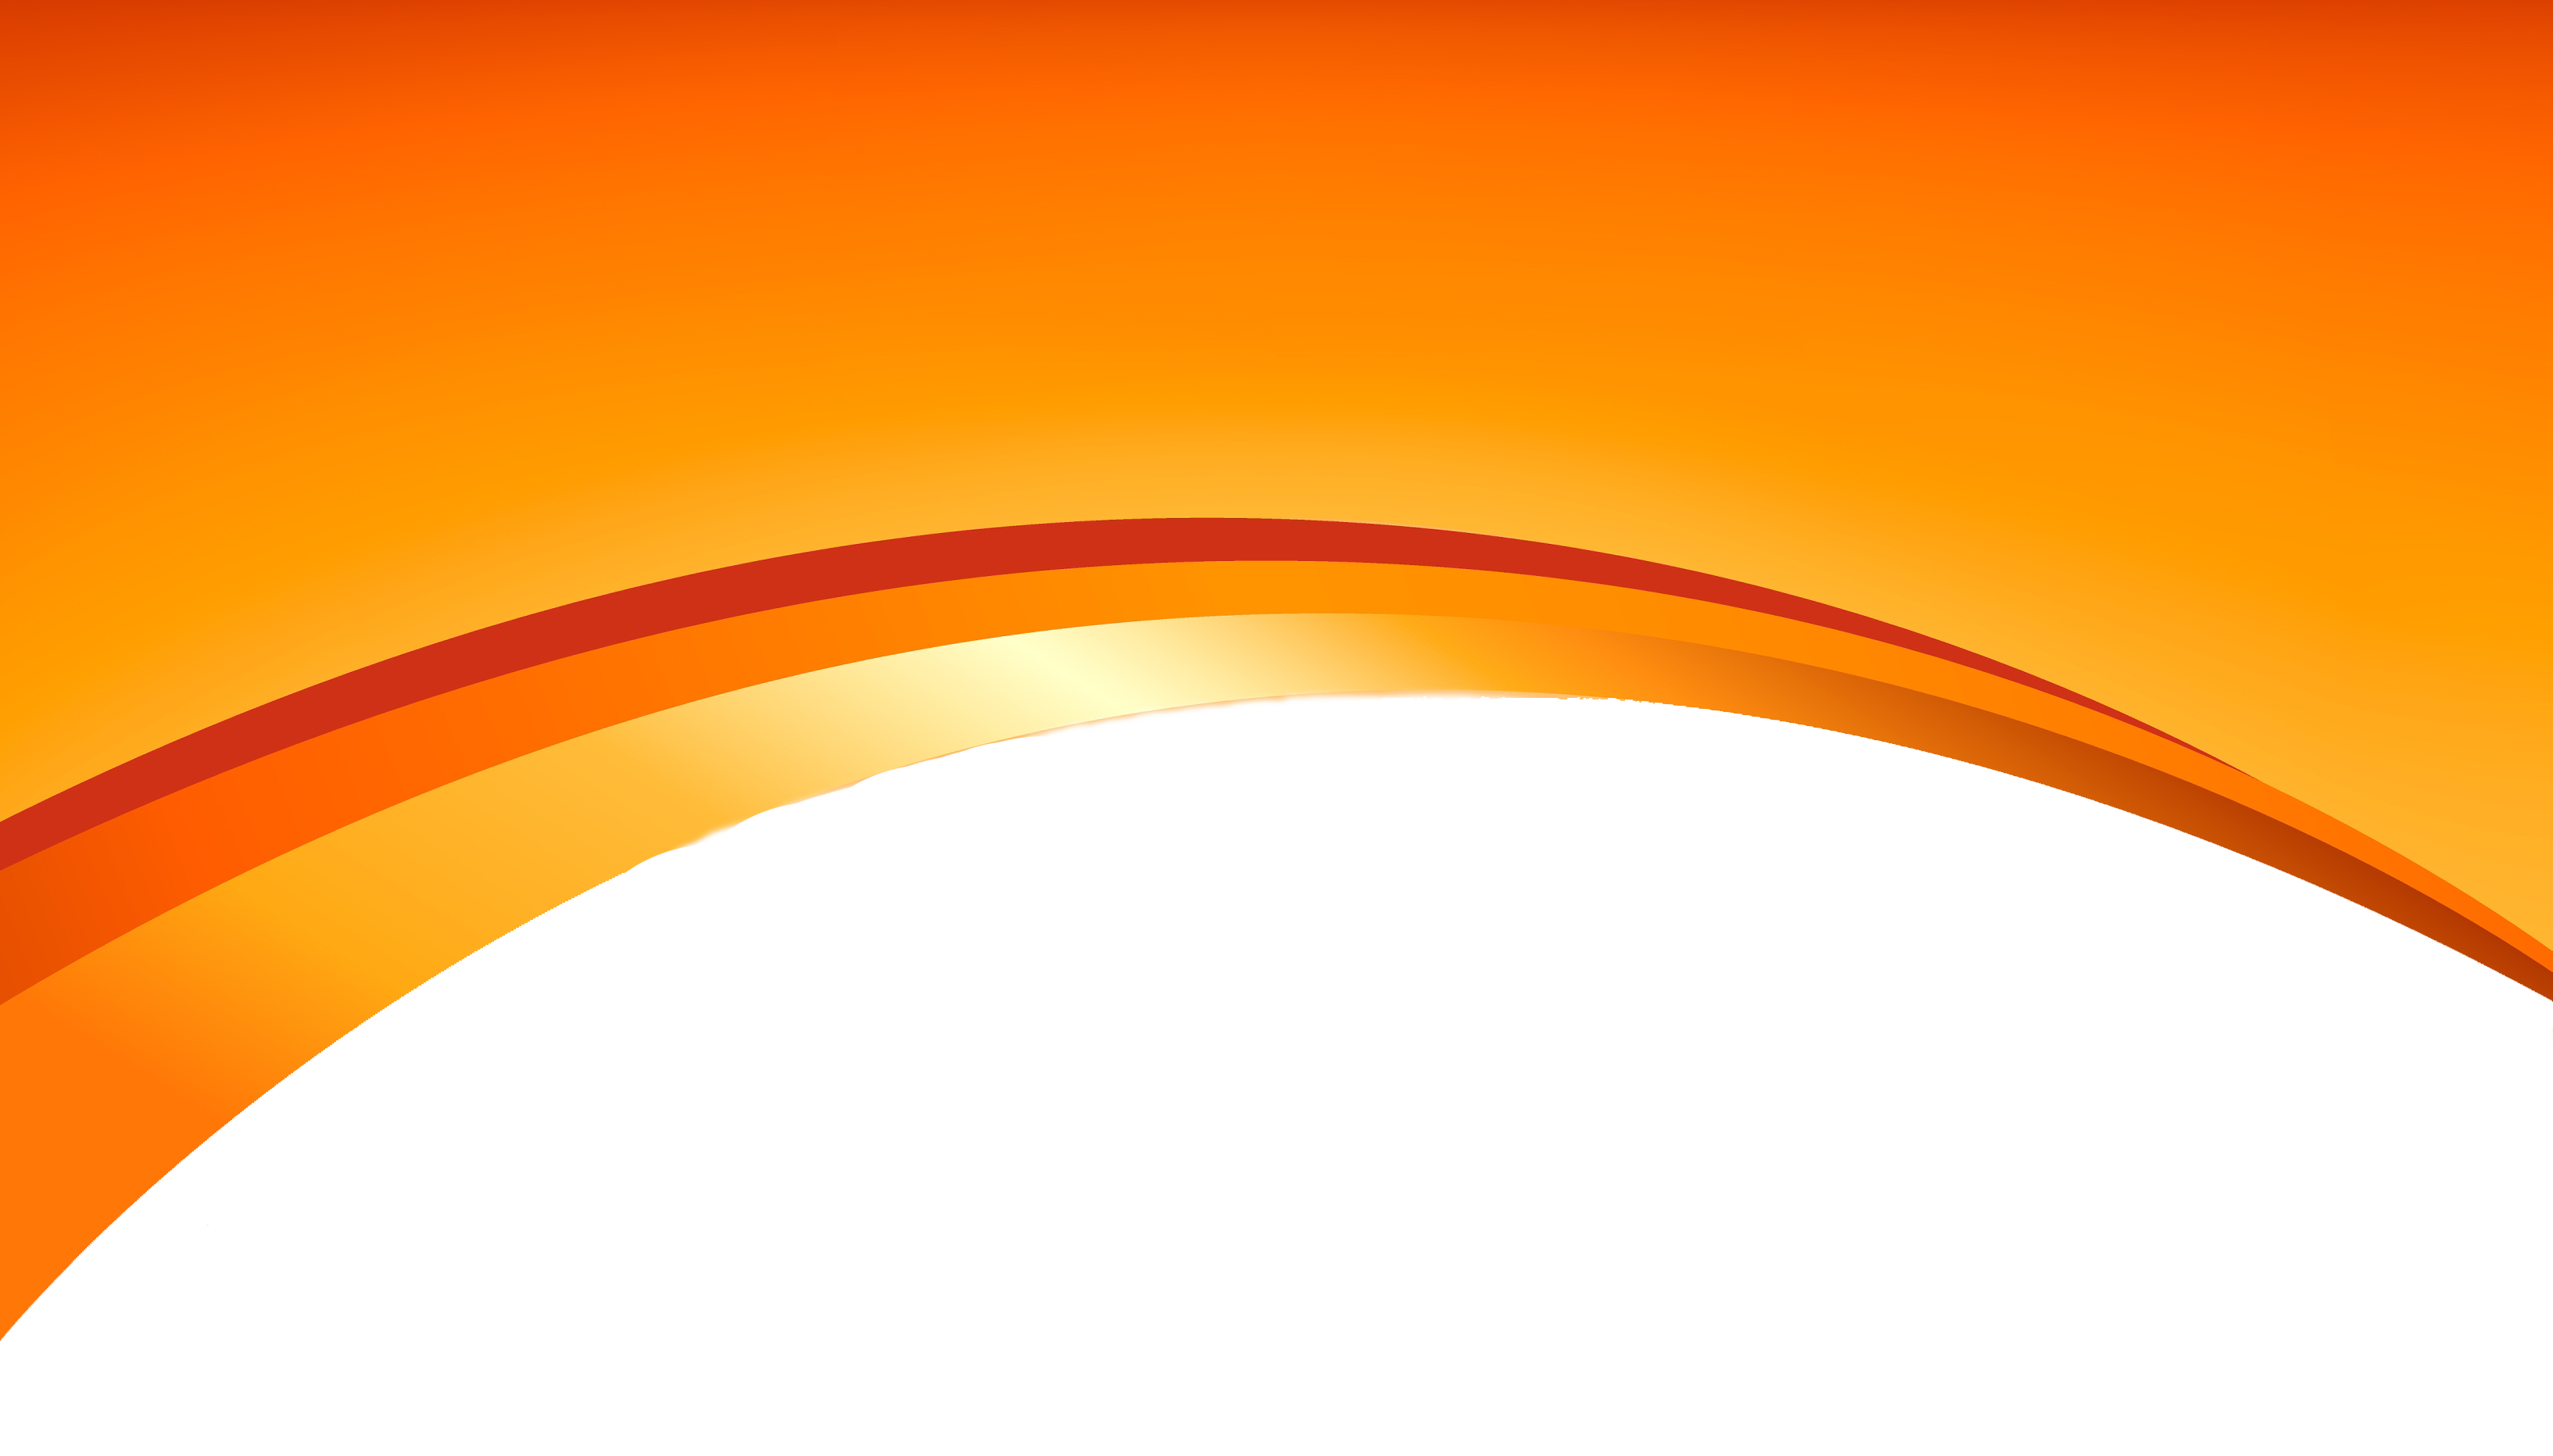 Orange background png. Www intrawallpaper com page